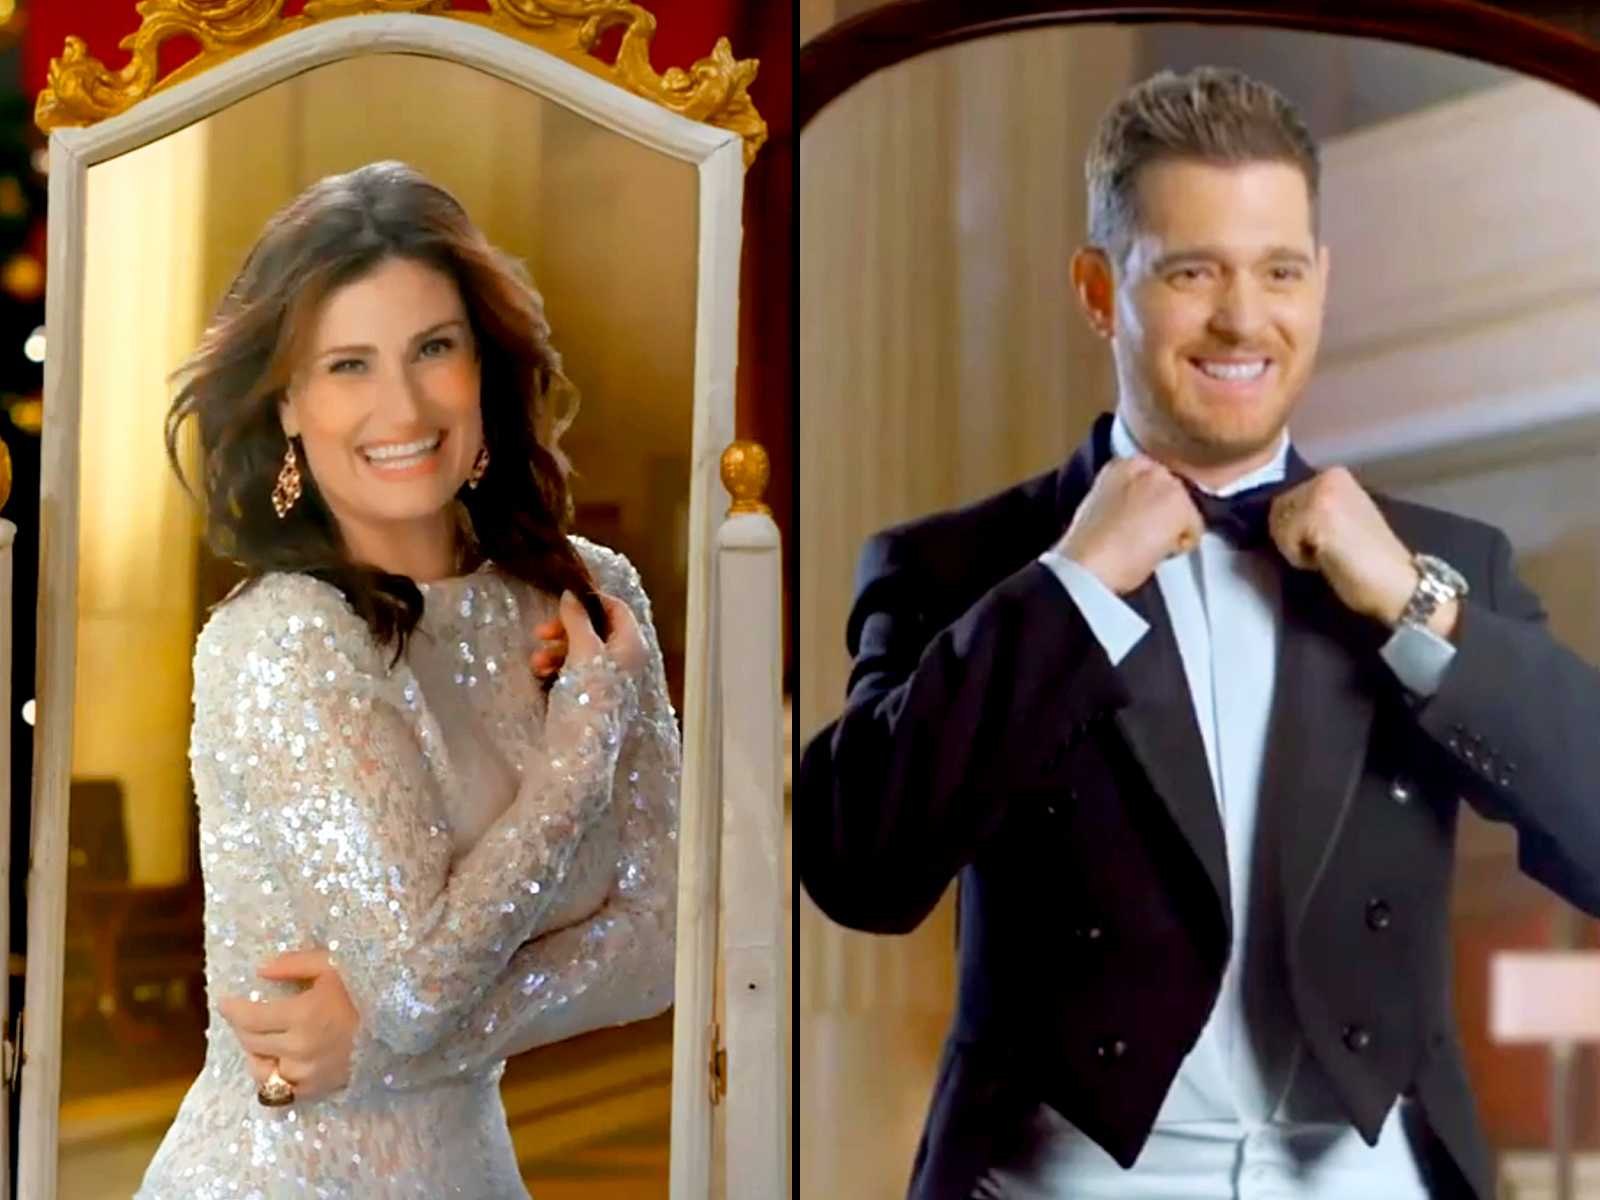 Idina Menzel and Michael Bublé Team Up For A Holiday Classic | Idina Menzel